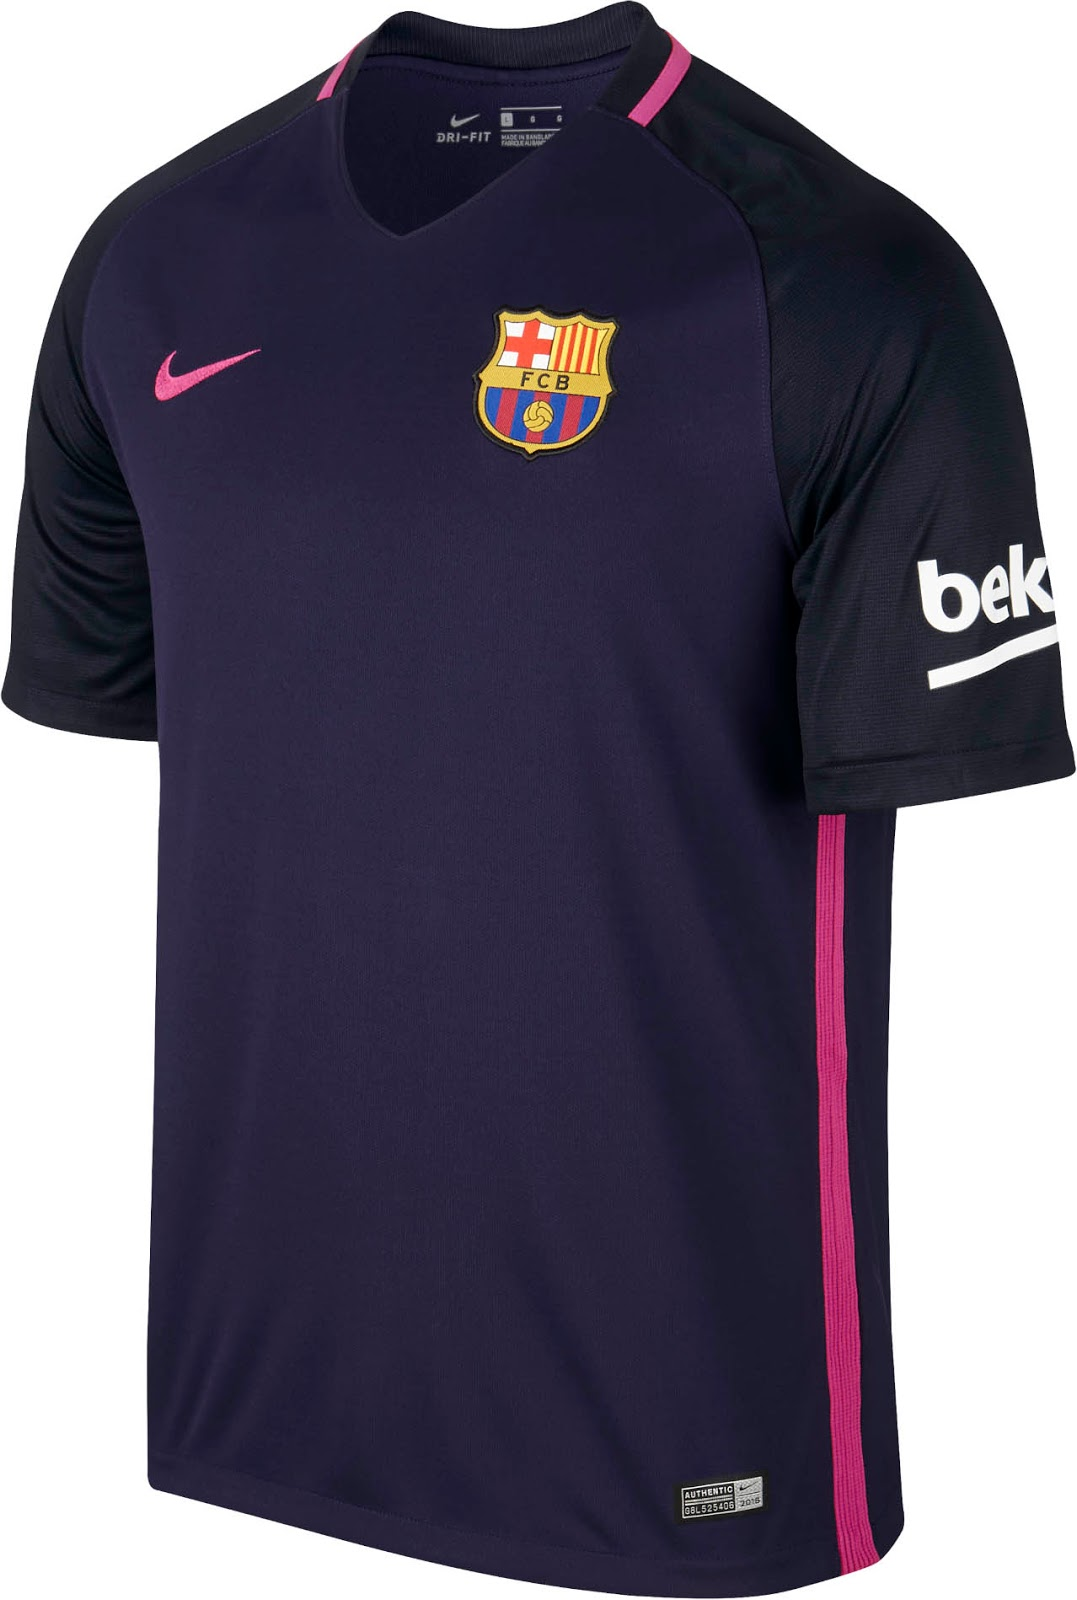 Barcelona 16 17 away kit released footy headlines for Fc barcelone maillot exterieur